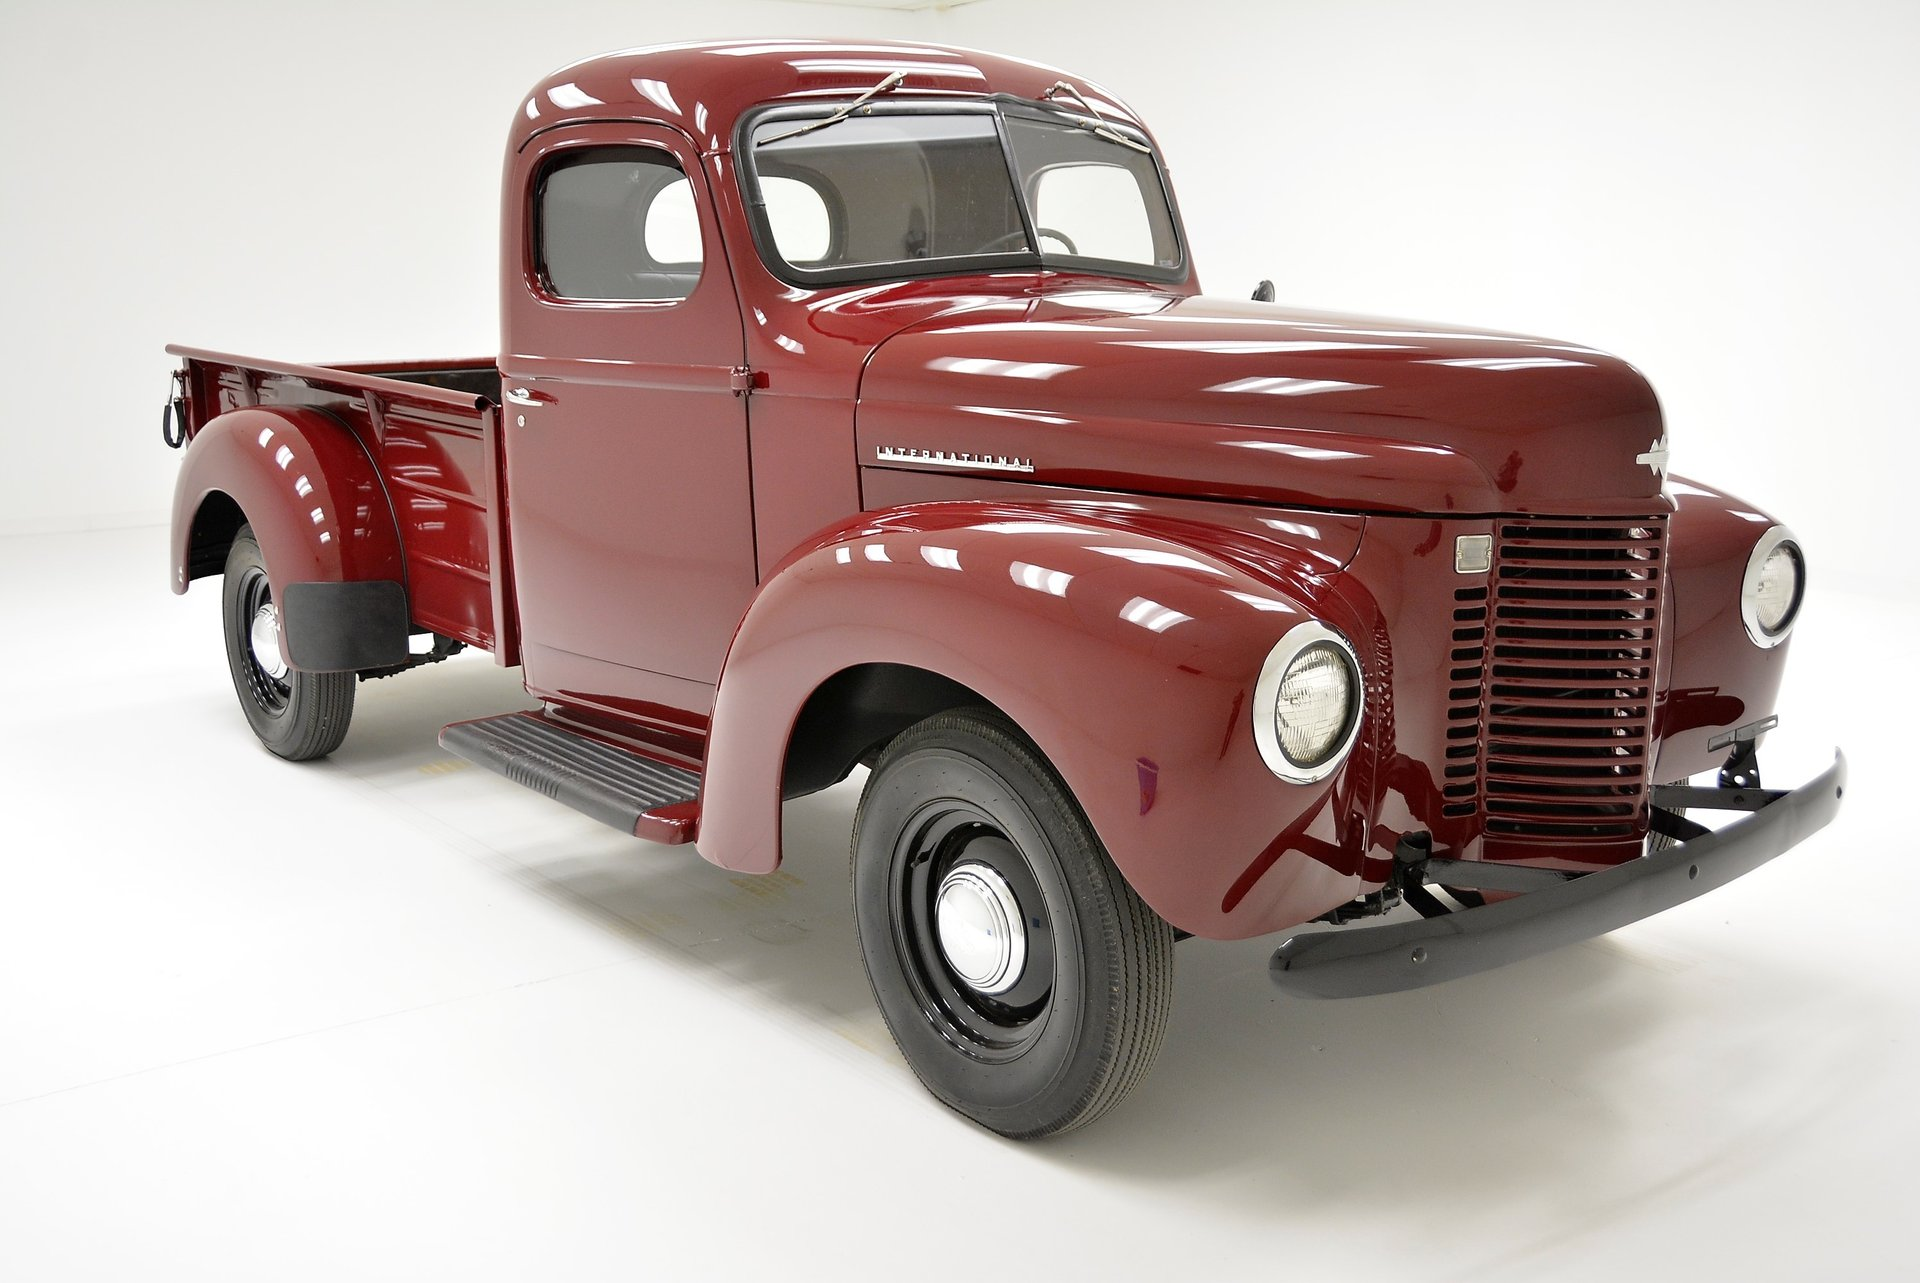 1941 International Model K Pickup Truck For Sale 83278 Mcg Mercury Pick Up